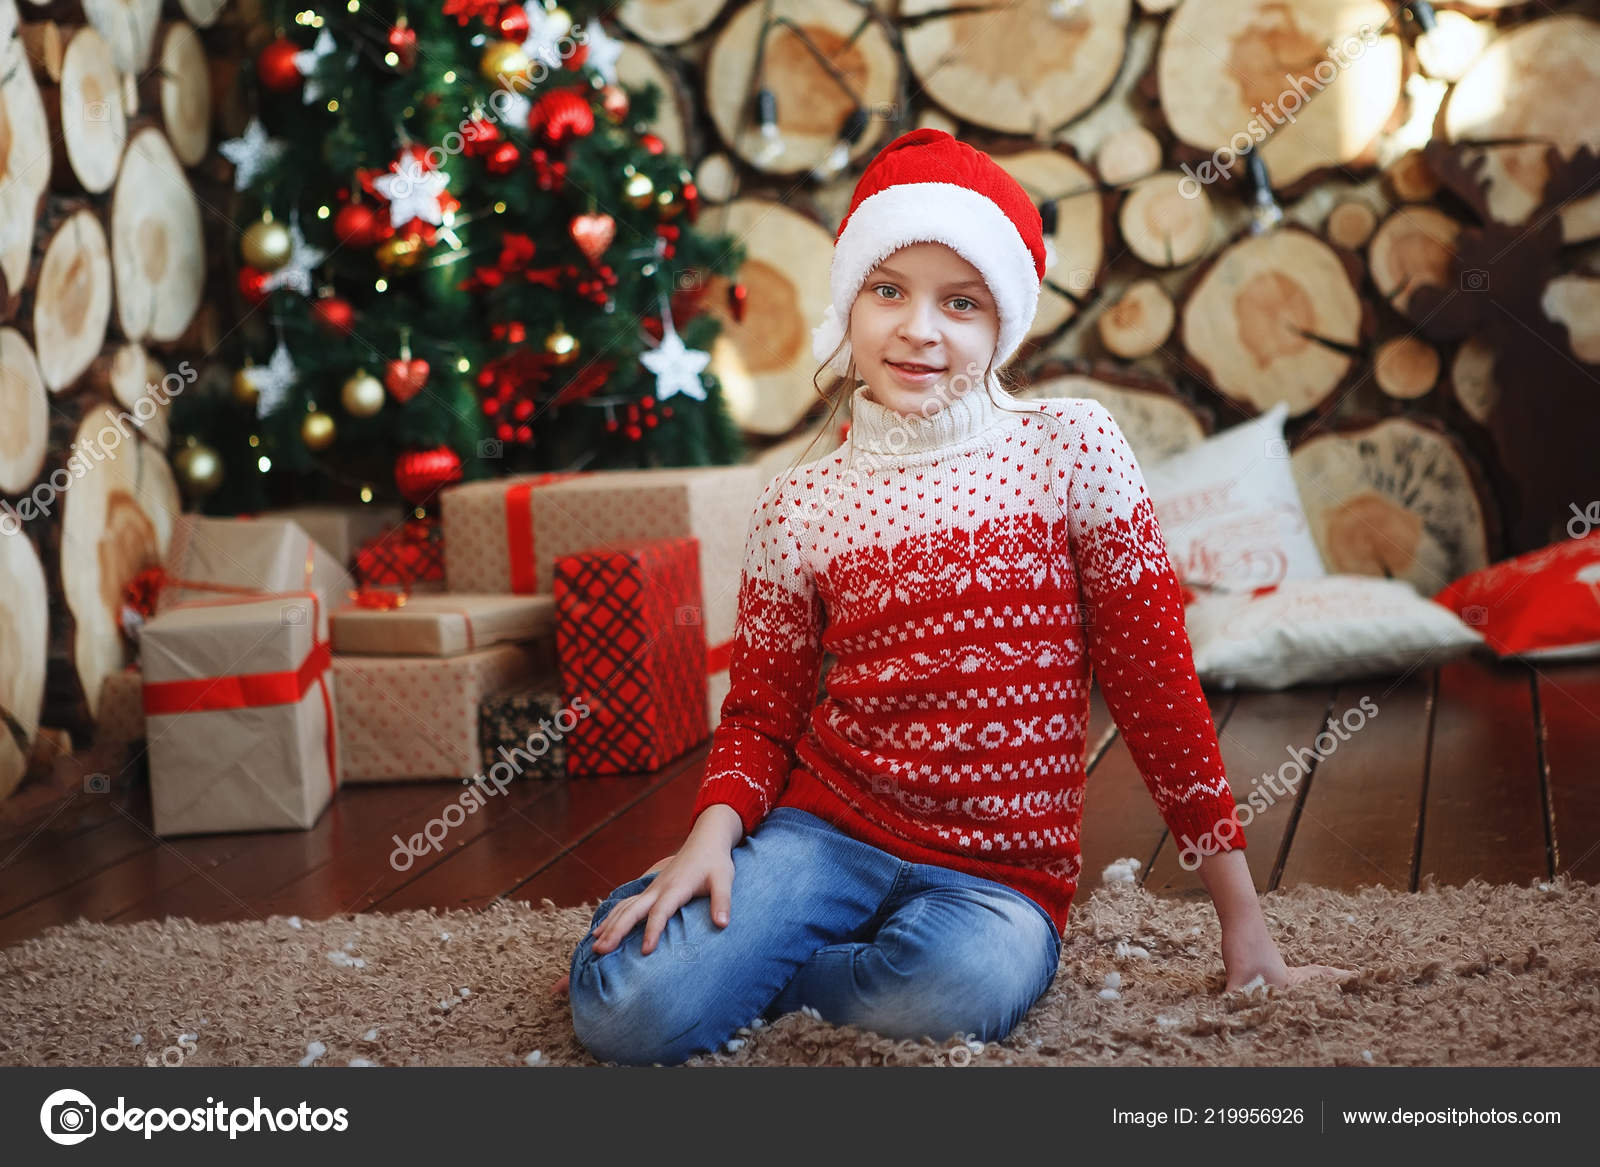 d05672973 Boy Christmas Hats Lying Laughing Rug New Year Tree Background ...